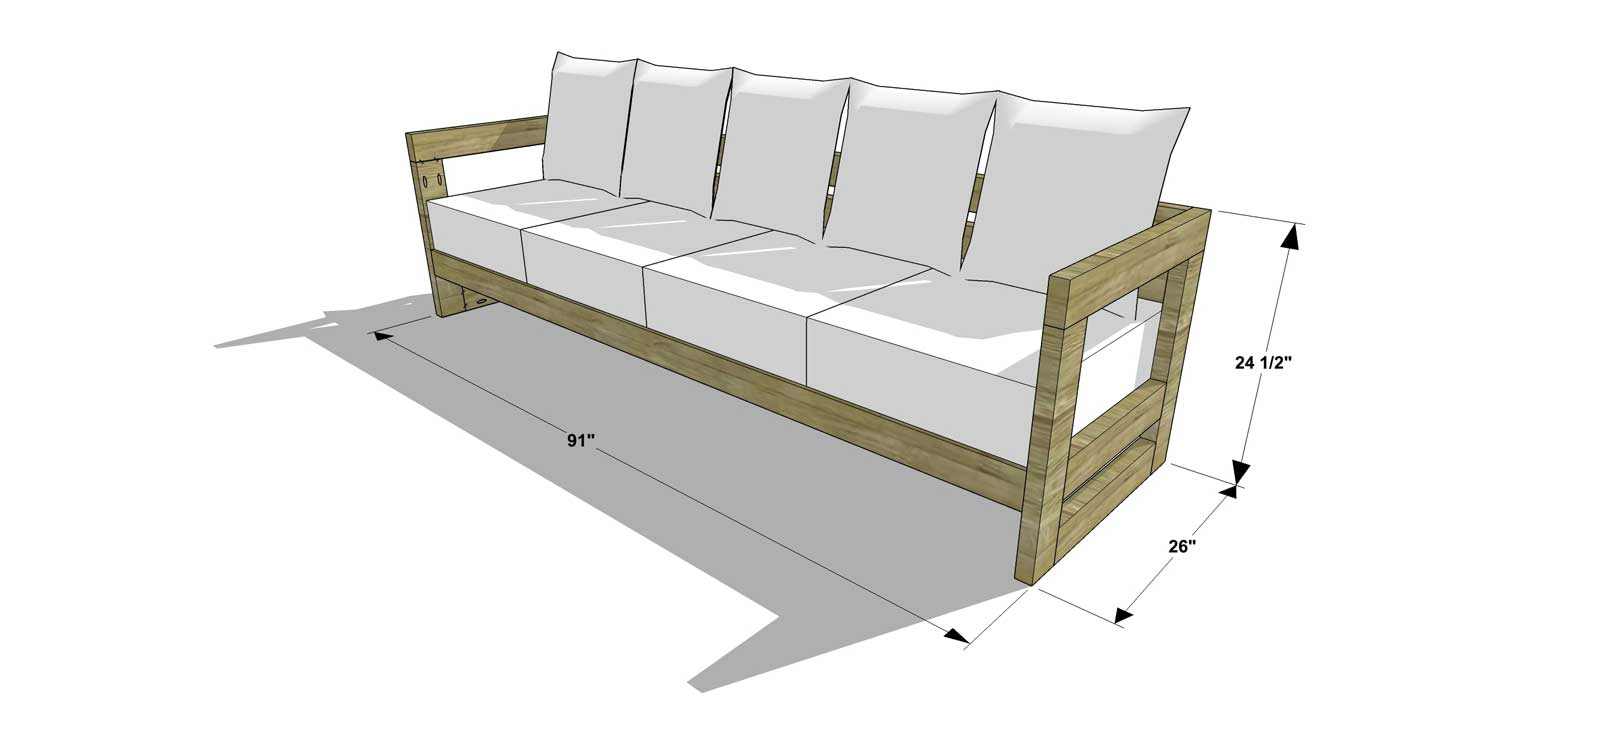 Free DIY Furniture Plans How to Build an Aegean Outdoor Sofa